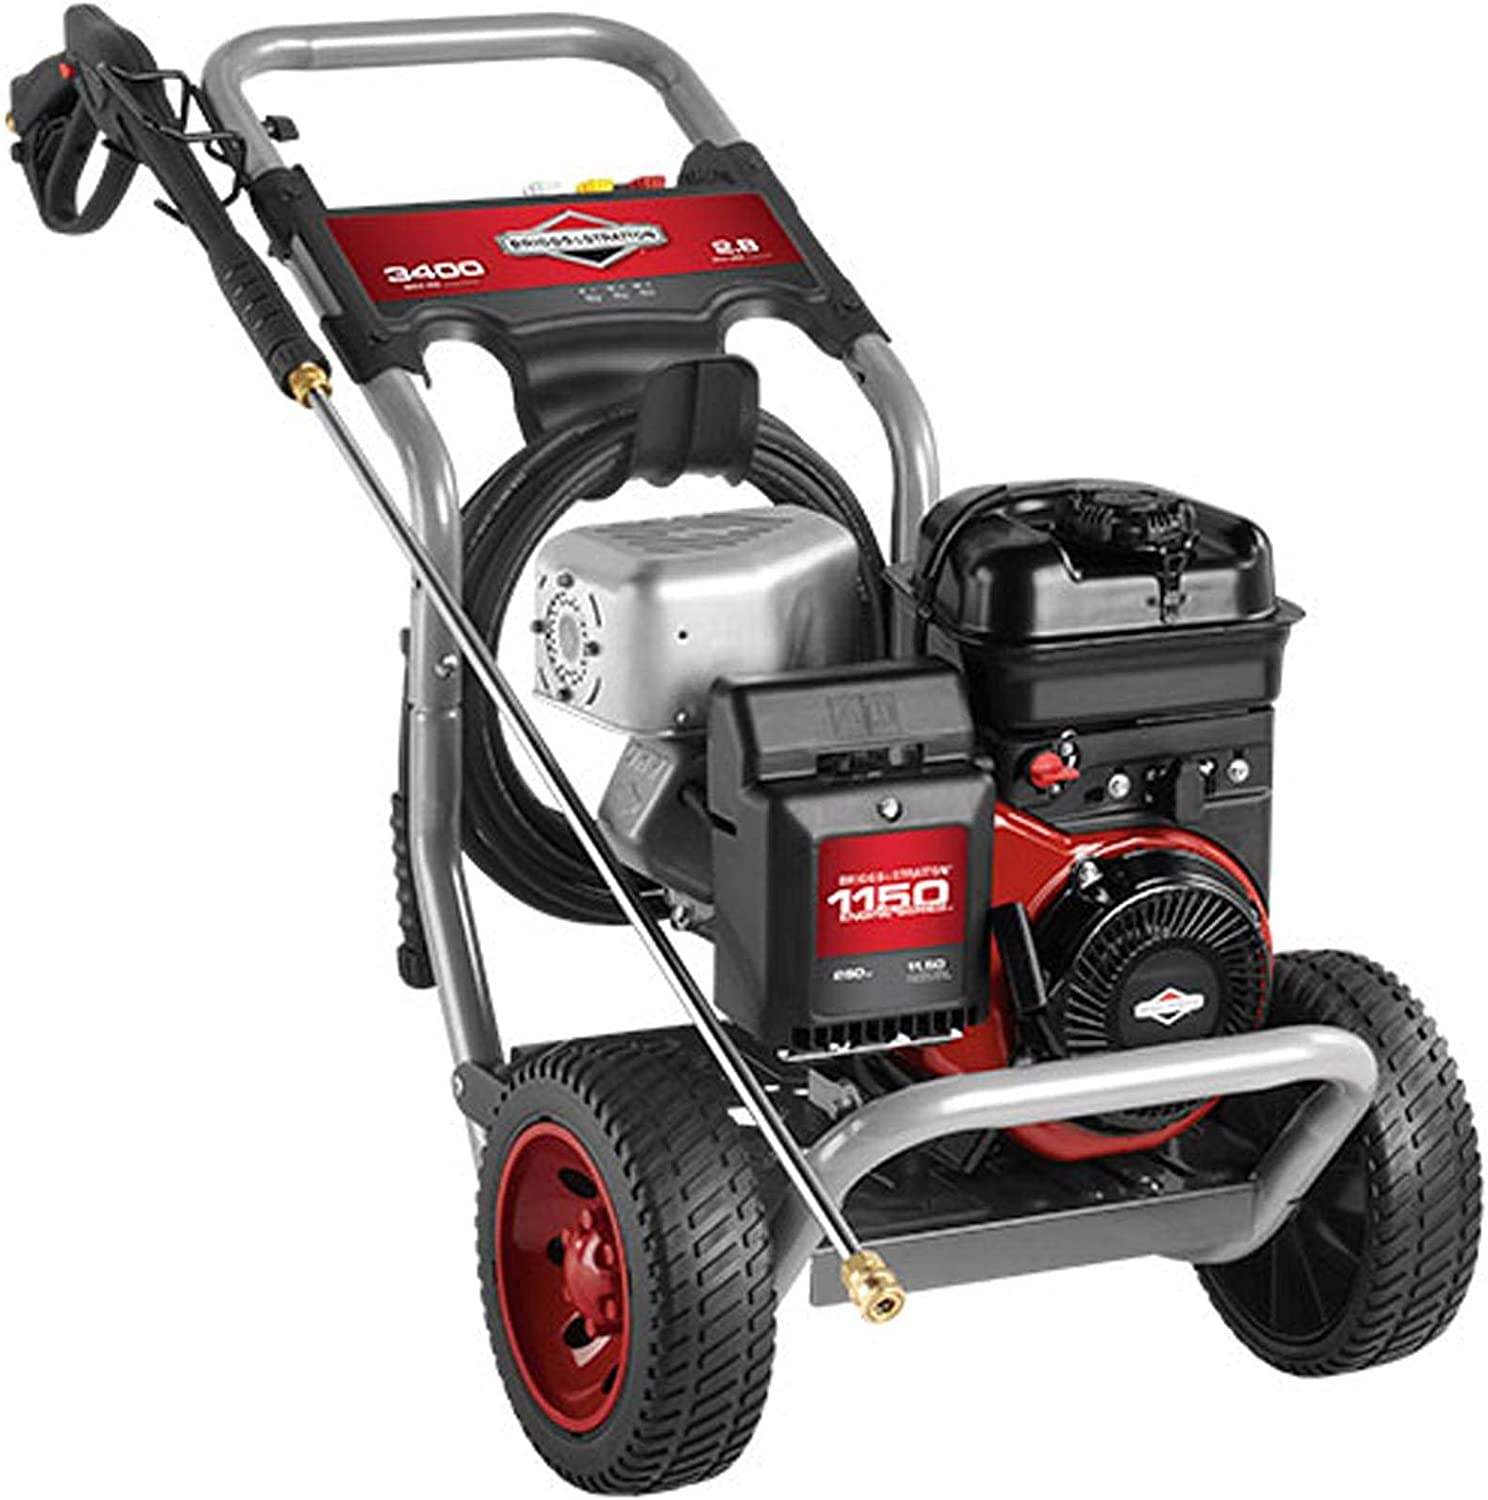 Briggs & Stratton S3400 3400 MAX PSI at 2.5 GPM Gas Pressure Washer